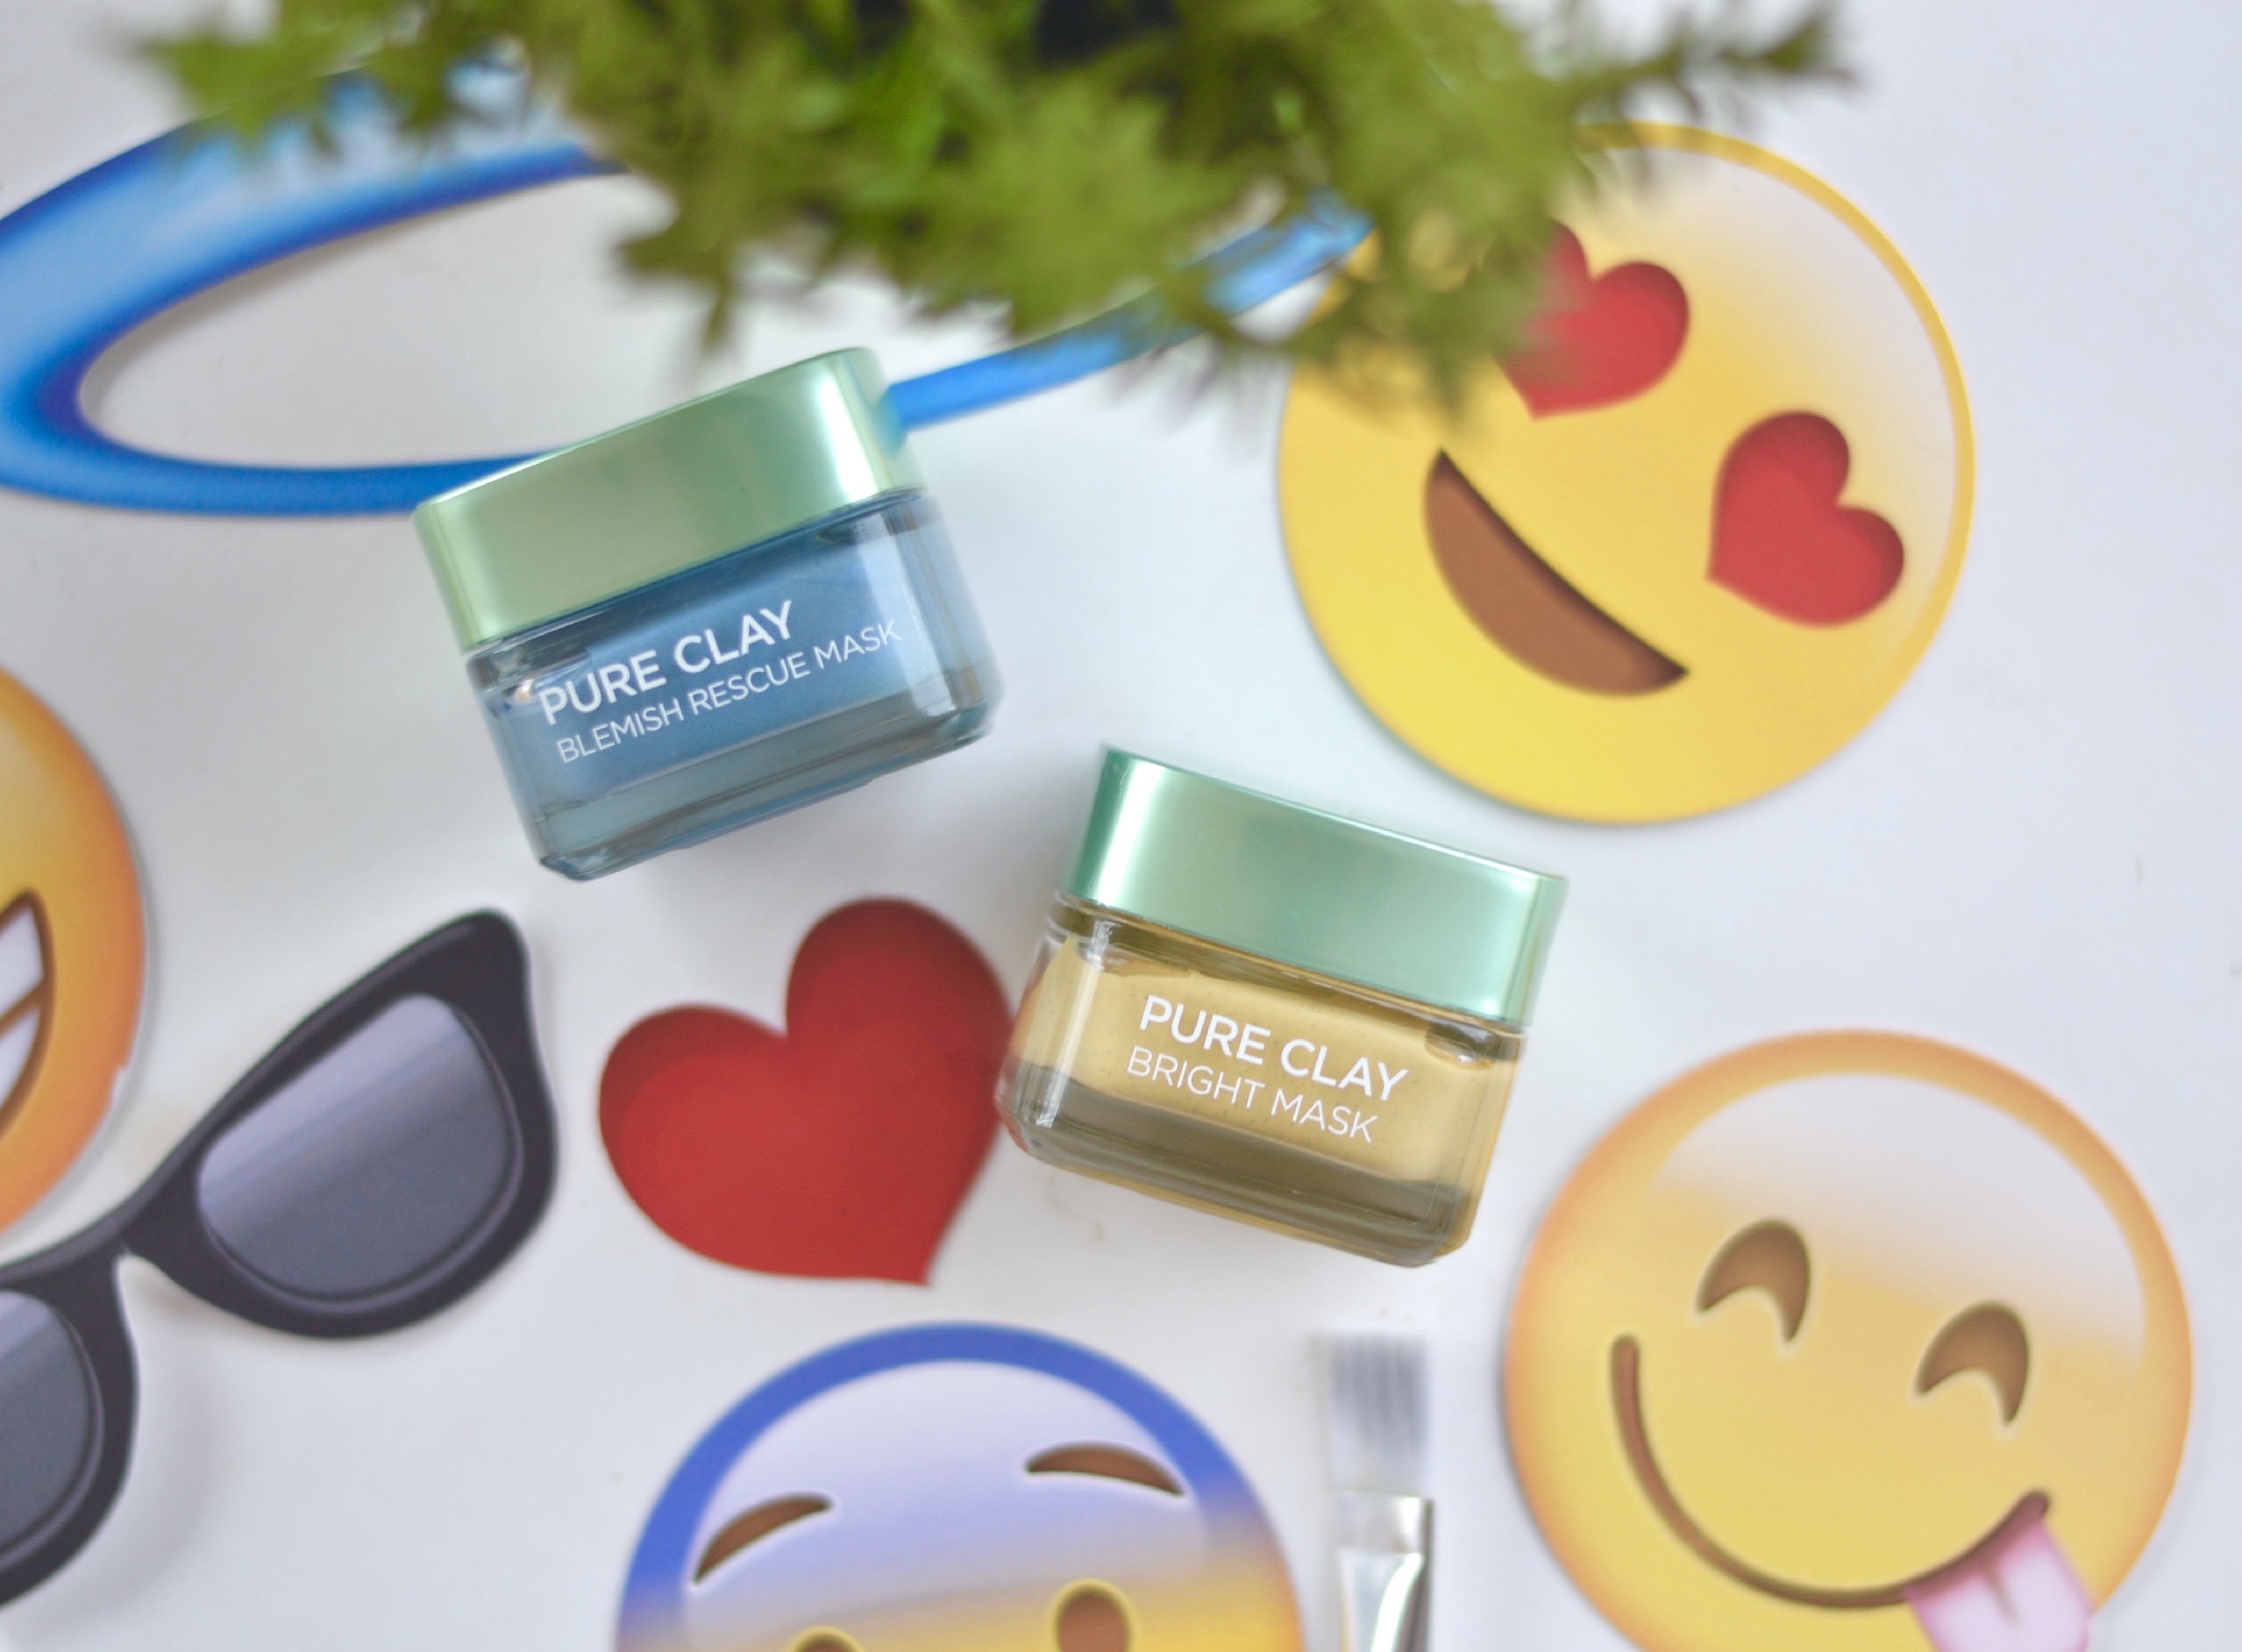 L'Oreal Blemish Rescue And Bright Mask Review